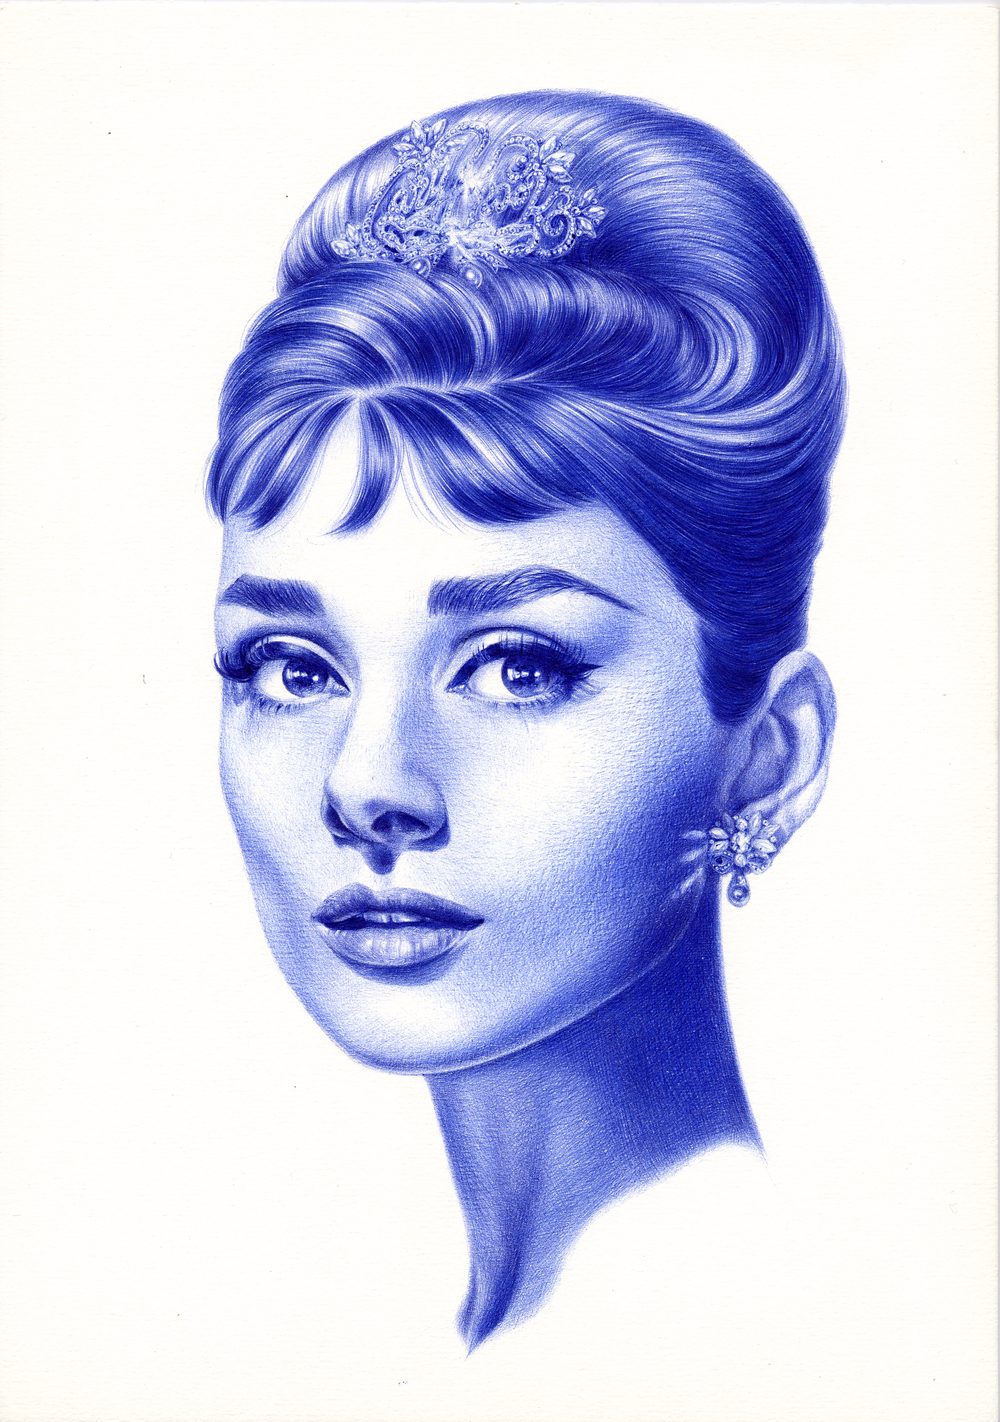 Hollywood - Audrey Hepburn (1960s) 2008 Ink on paper 29.7 x 21 cm / 11.7 x 8.3 in